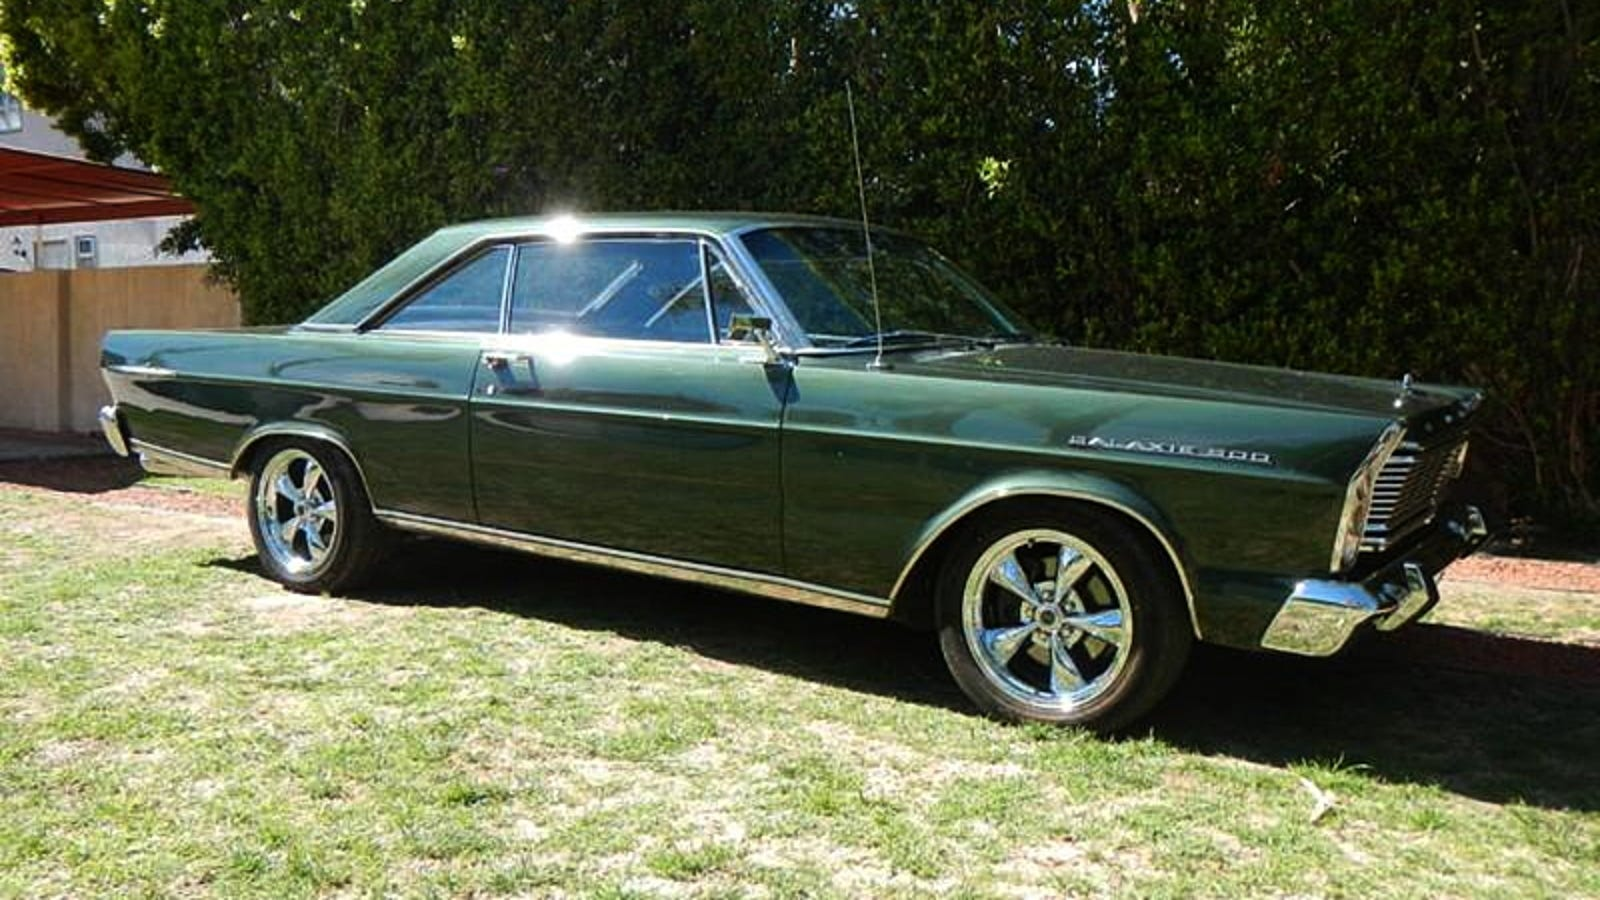 For 27 900 This 1965 Ford Galaxie 500 Might Be The